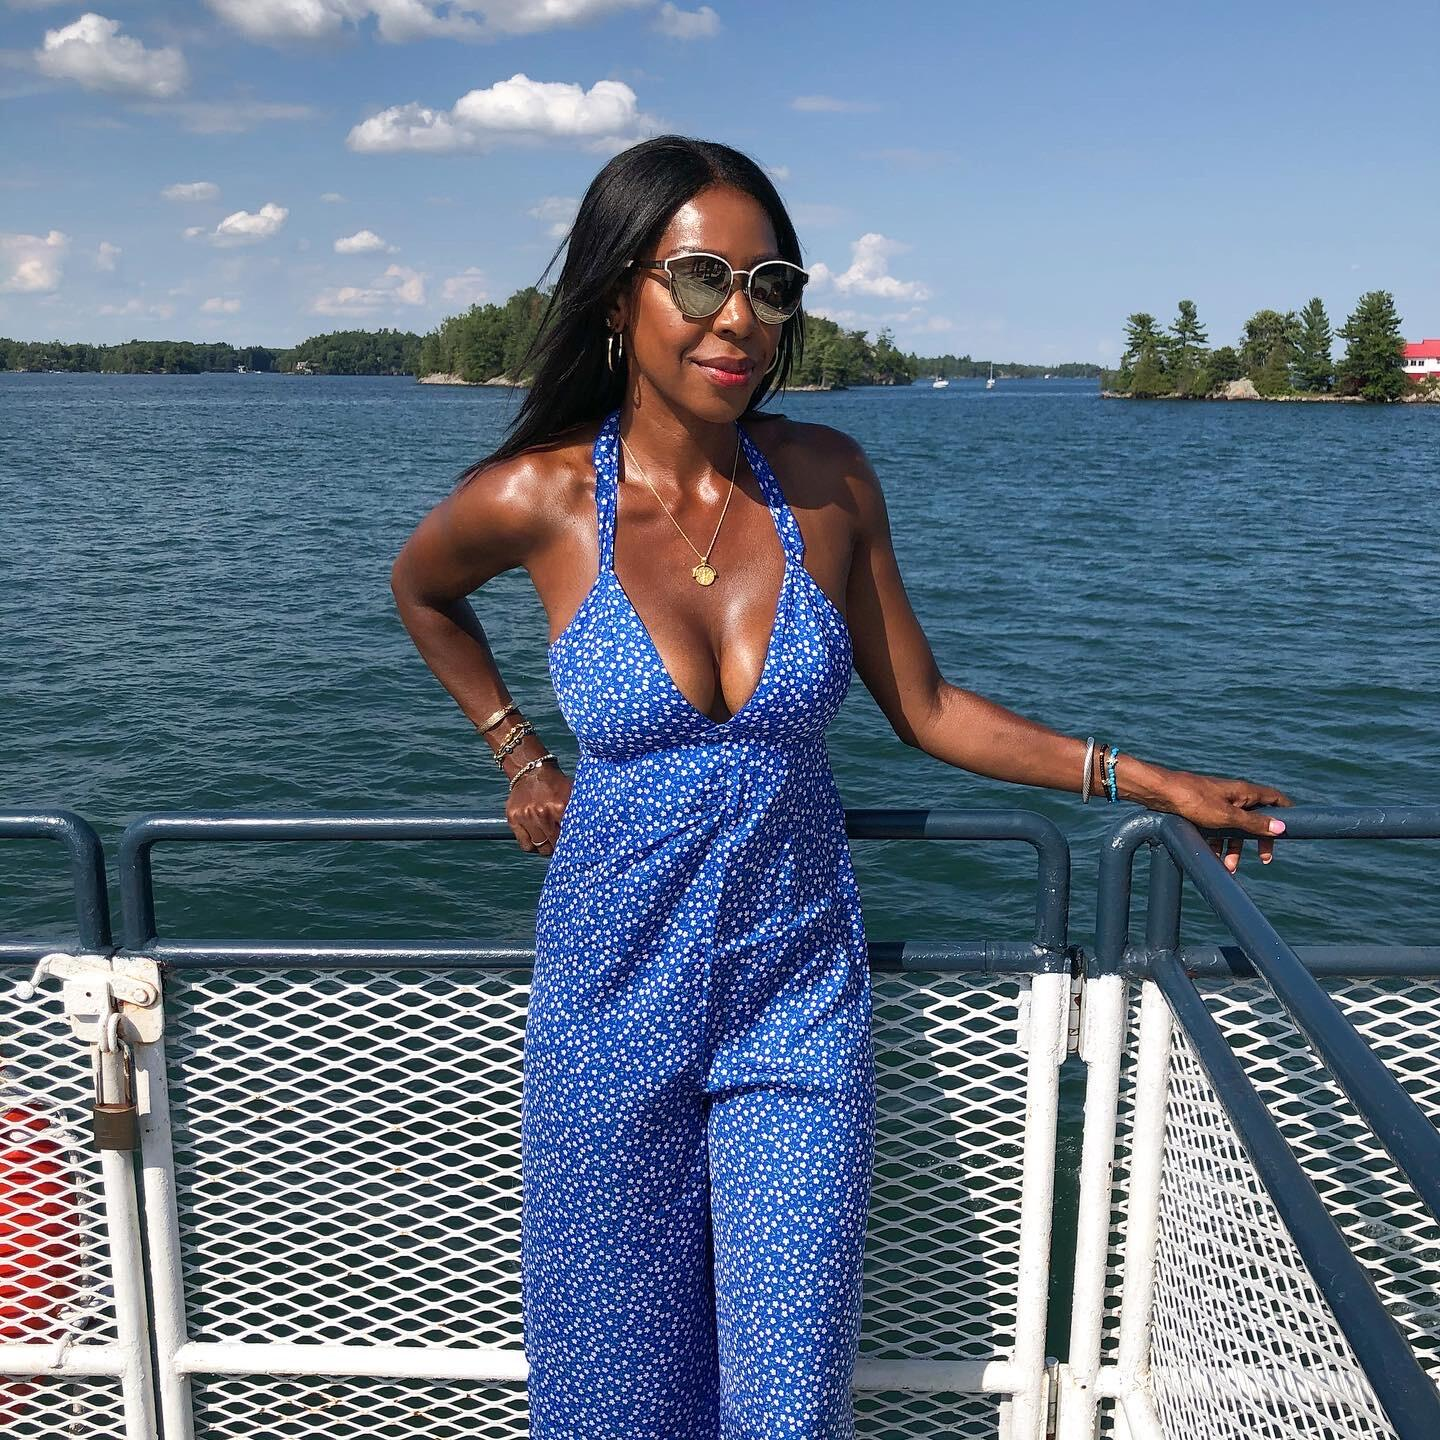 Dominique Baker on a cruise in 1000 Islands